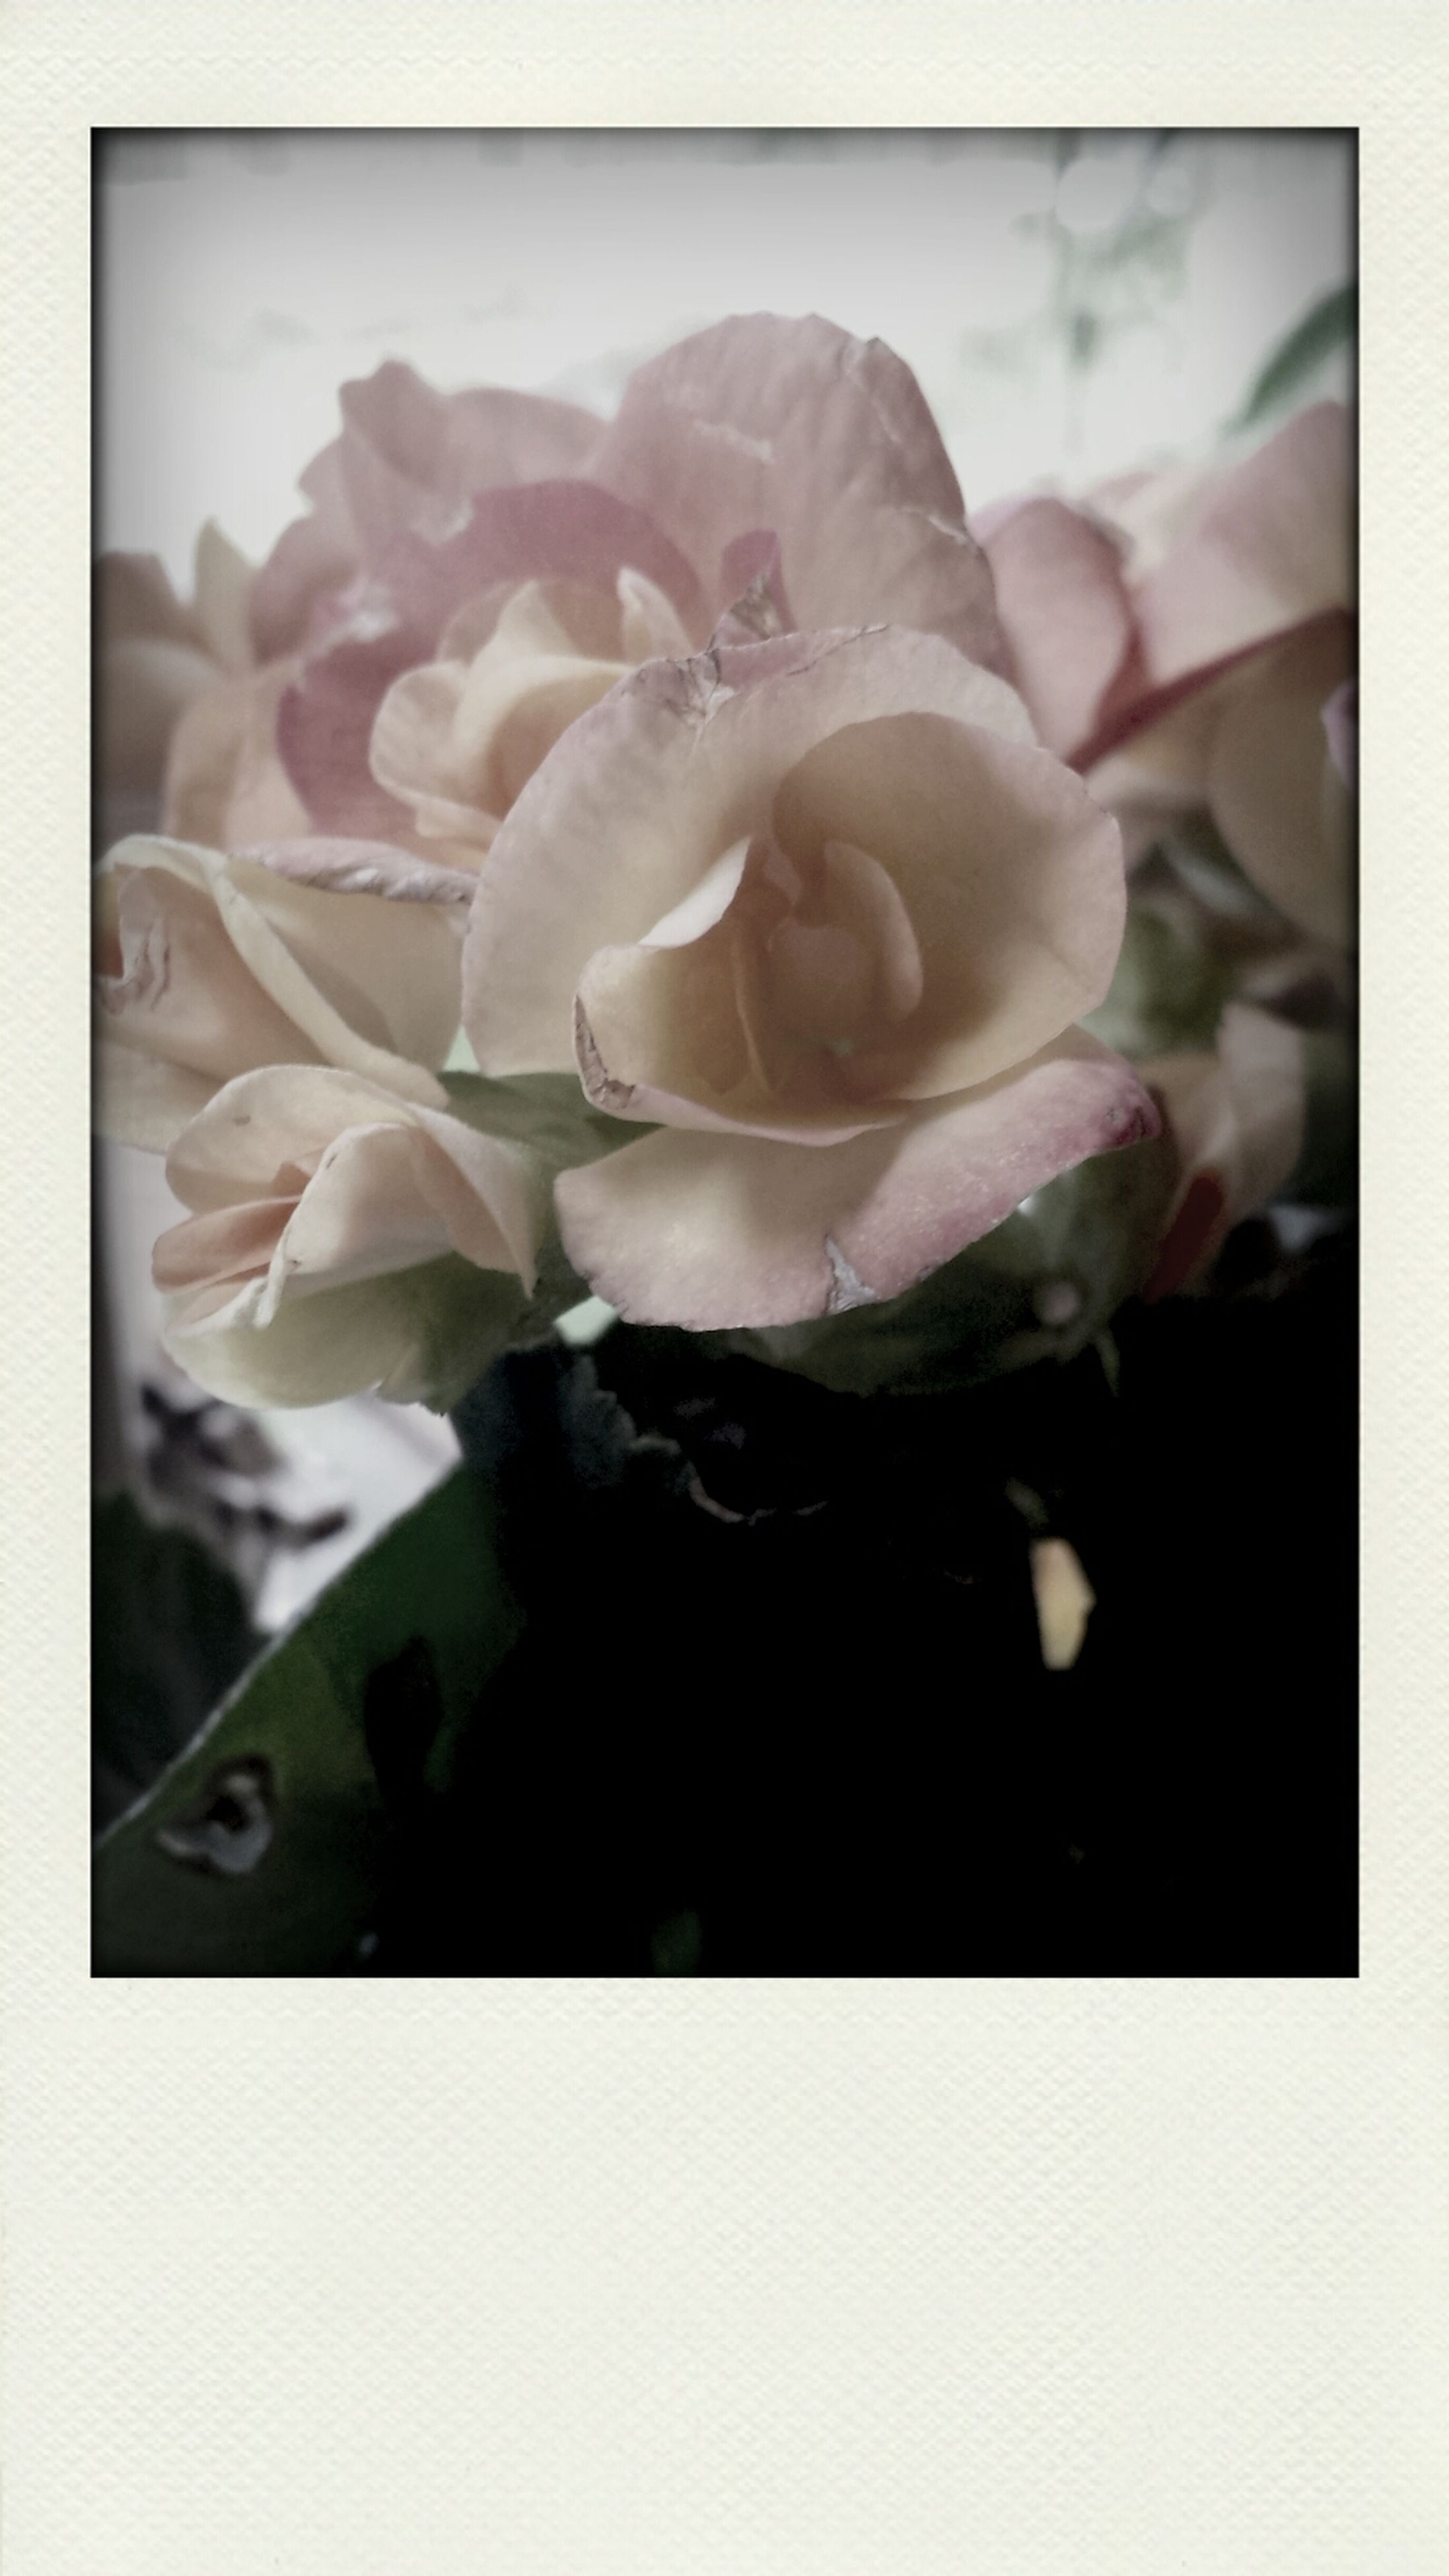 flower, petal, transfer print, flower head, fragility, freshness, beauty in nature, close-up, rose - flower, auto post production filter, growth, single flower, nature, blooming, plant, rose, white color, in bloom, blossom, studio shot